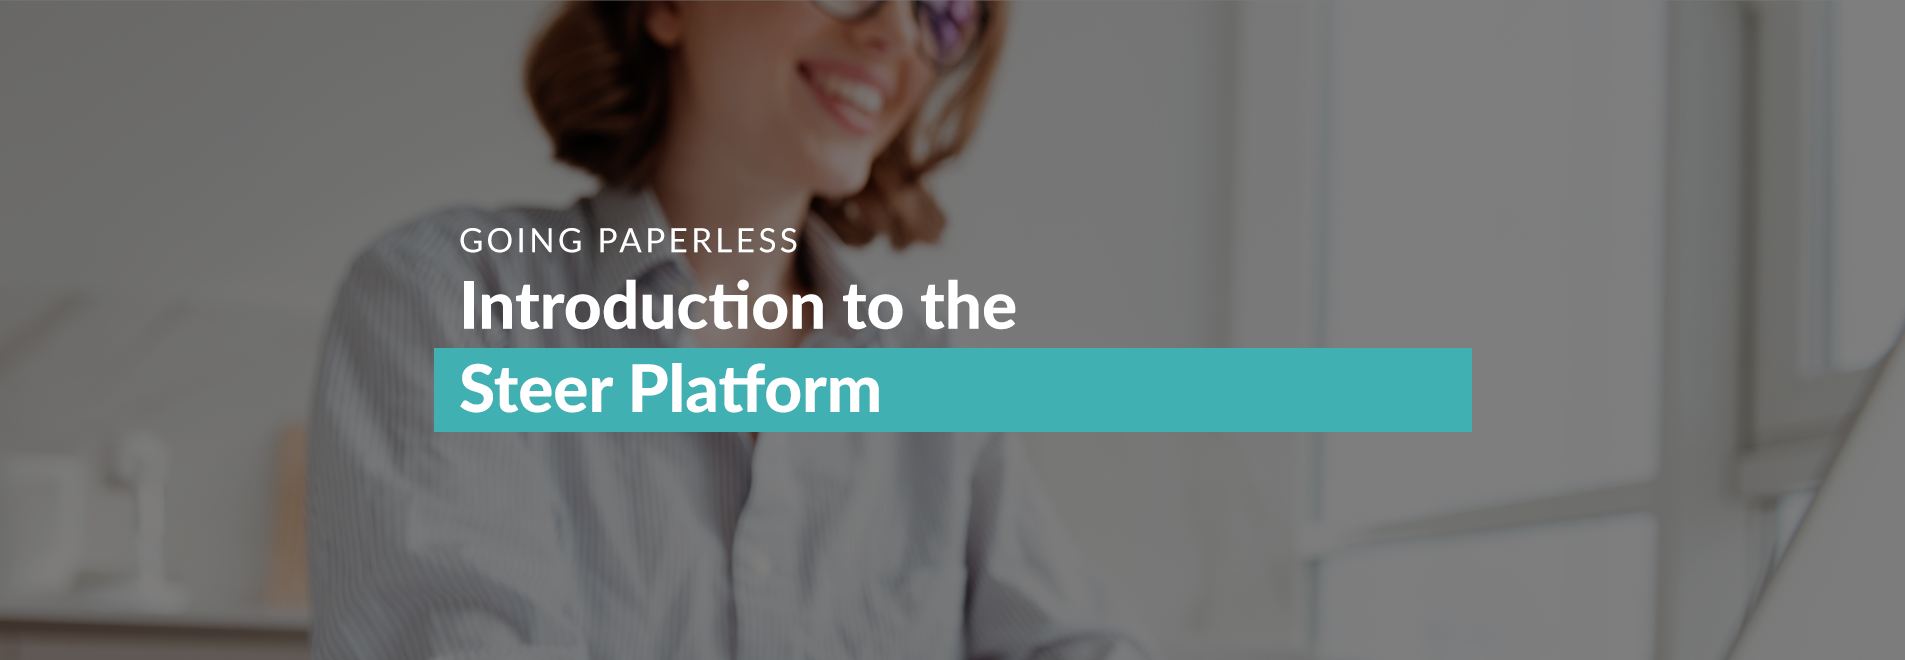 GO PAPERLESS: Improving process efficiency through digital forms and workflows